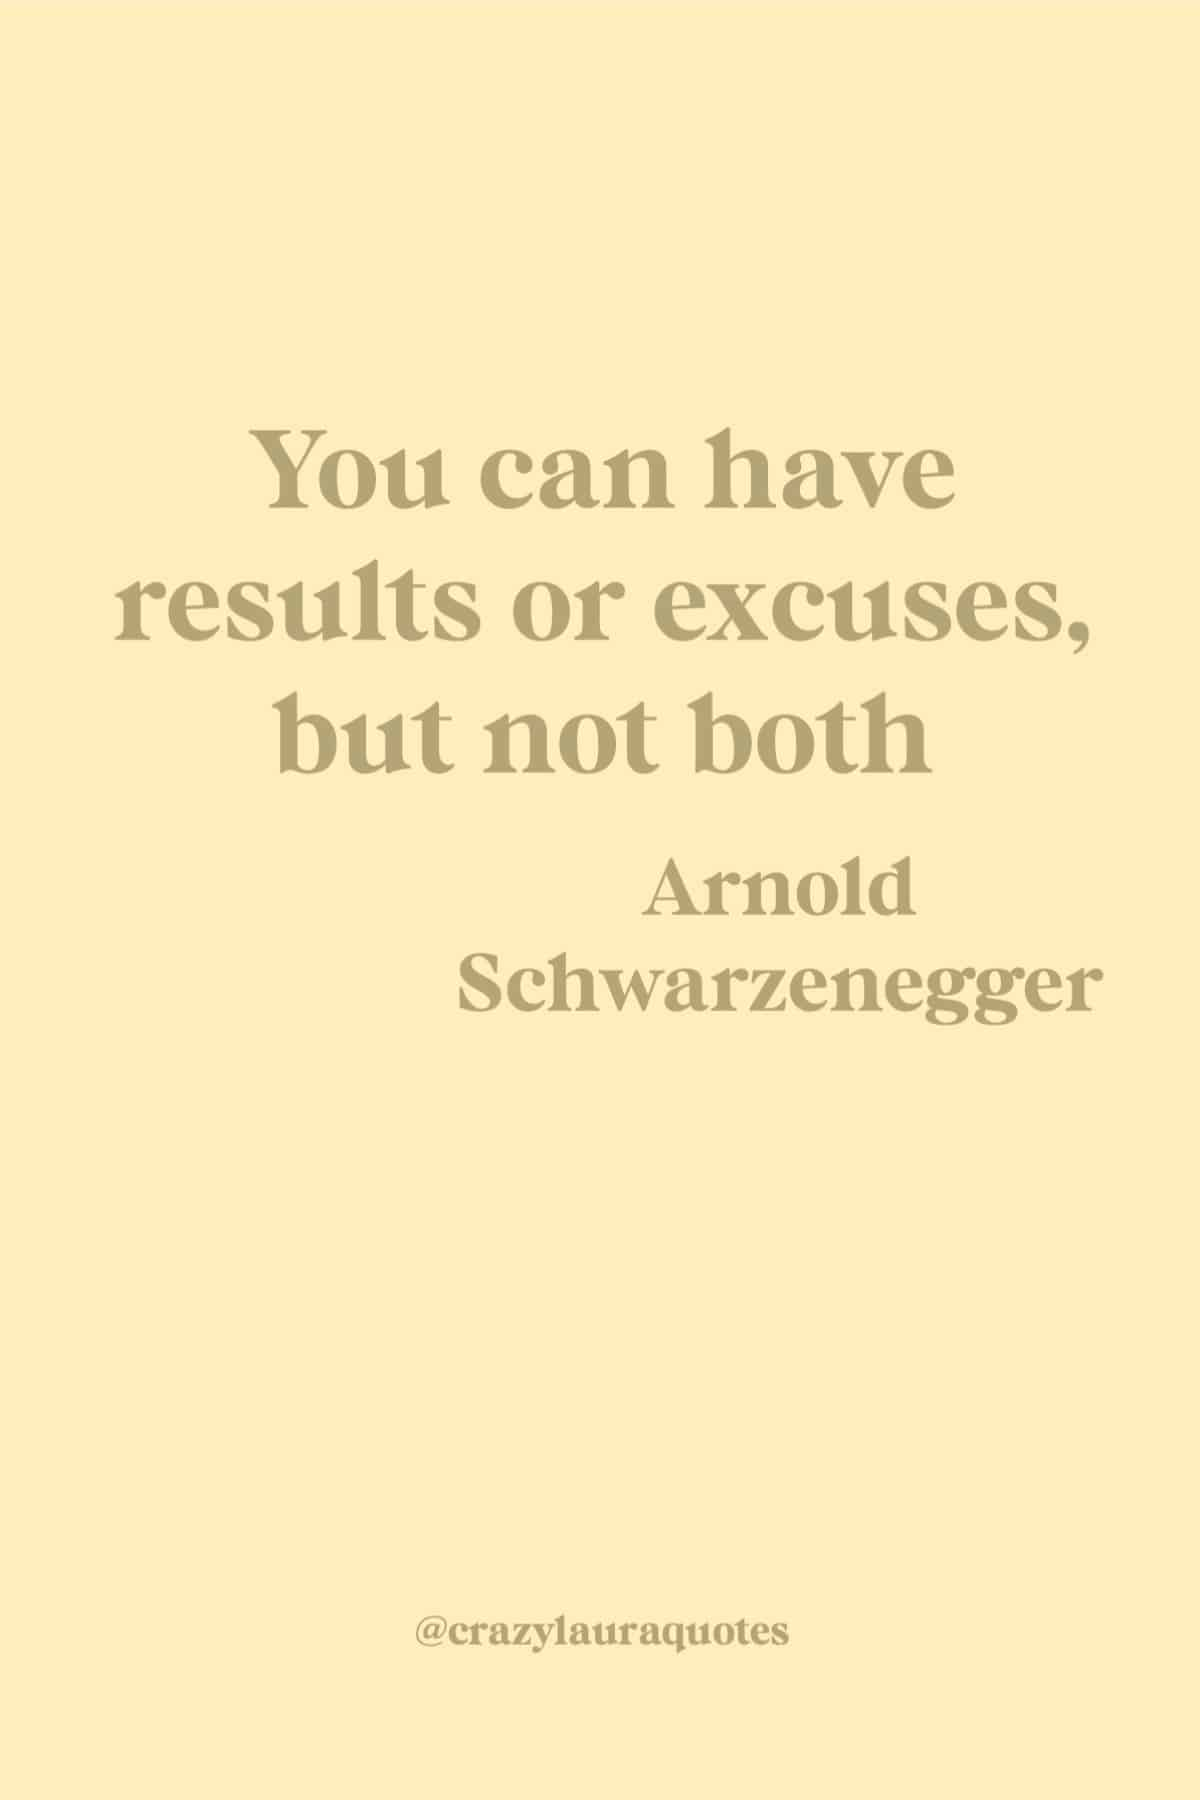 workout results quote by arnold